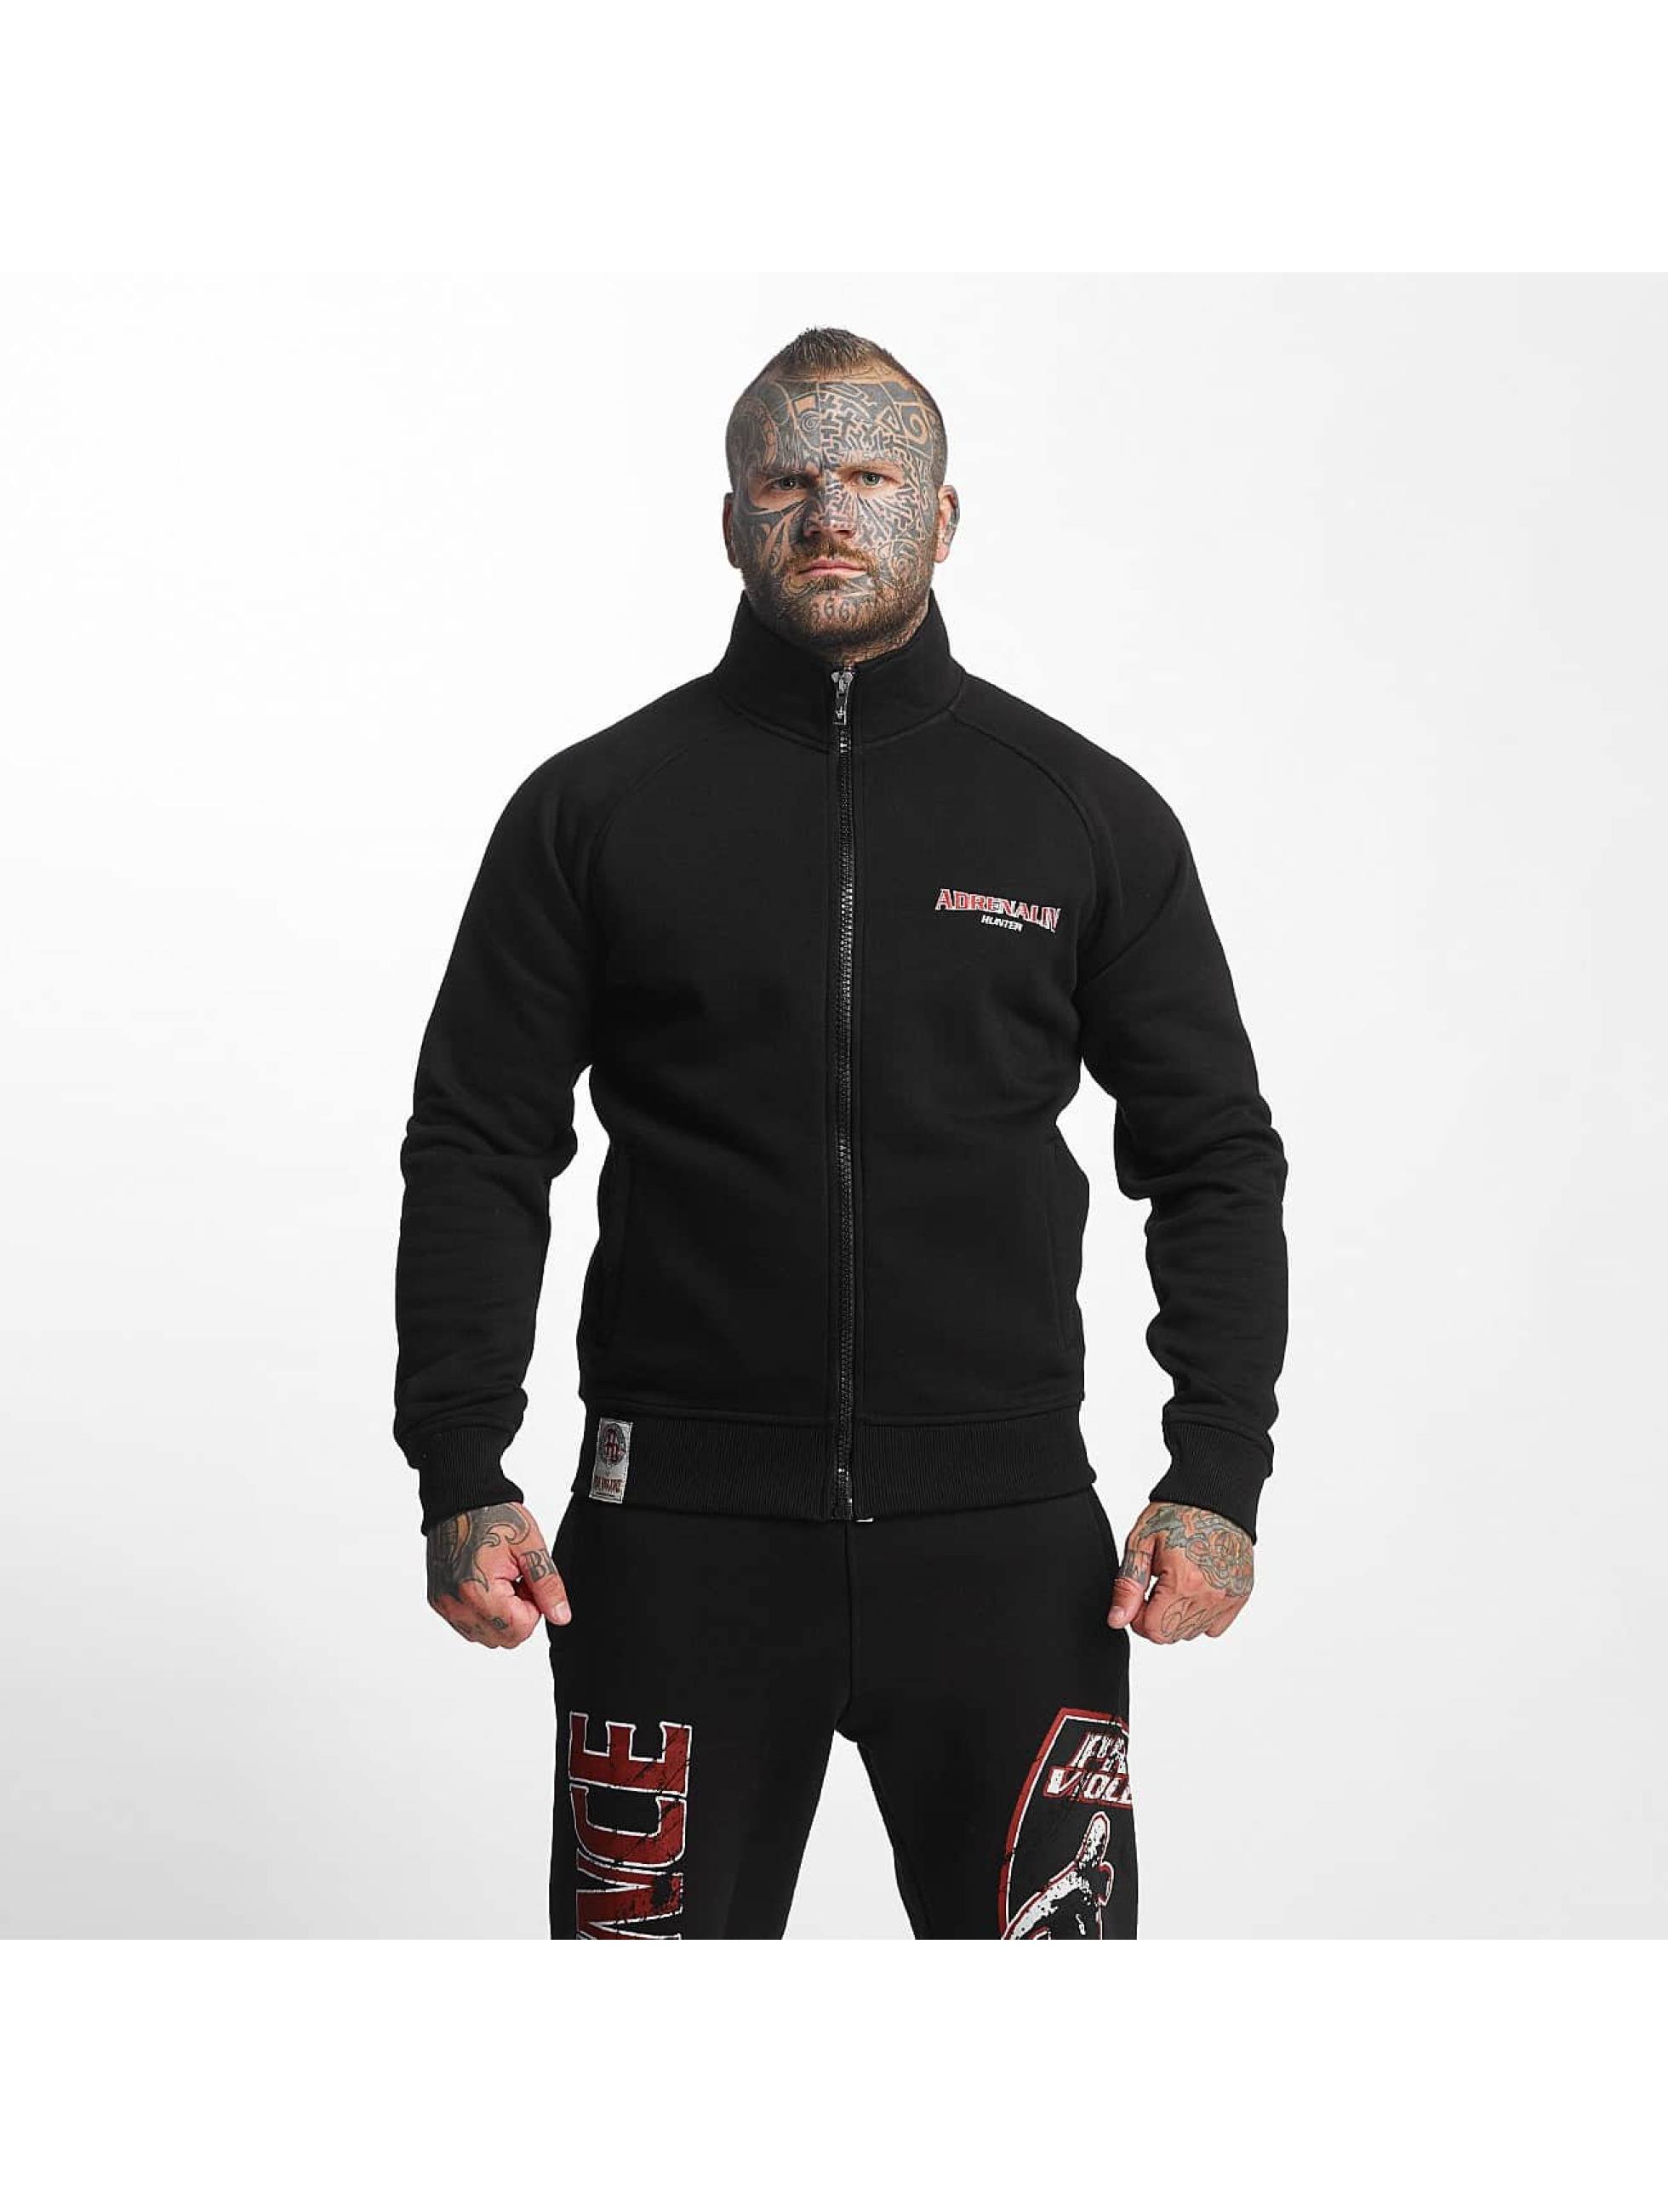 Pro Violence Streetwear Lightweight Jacket Adrenlin Hunter black